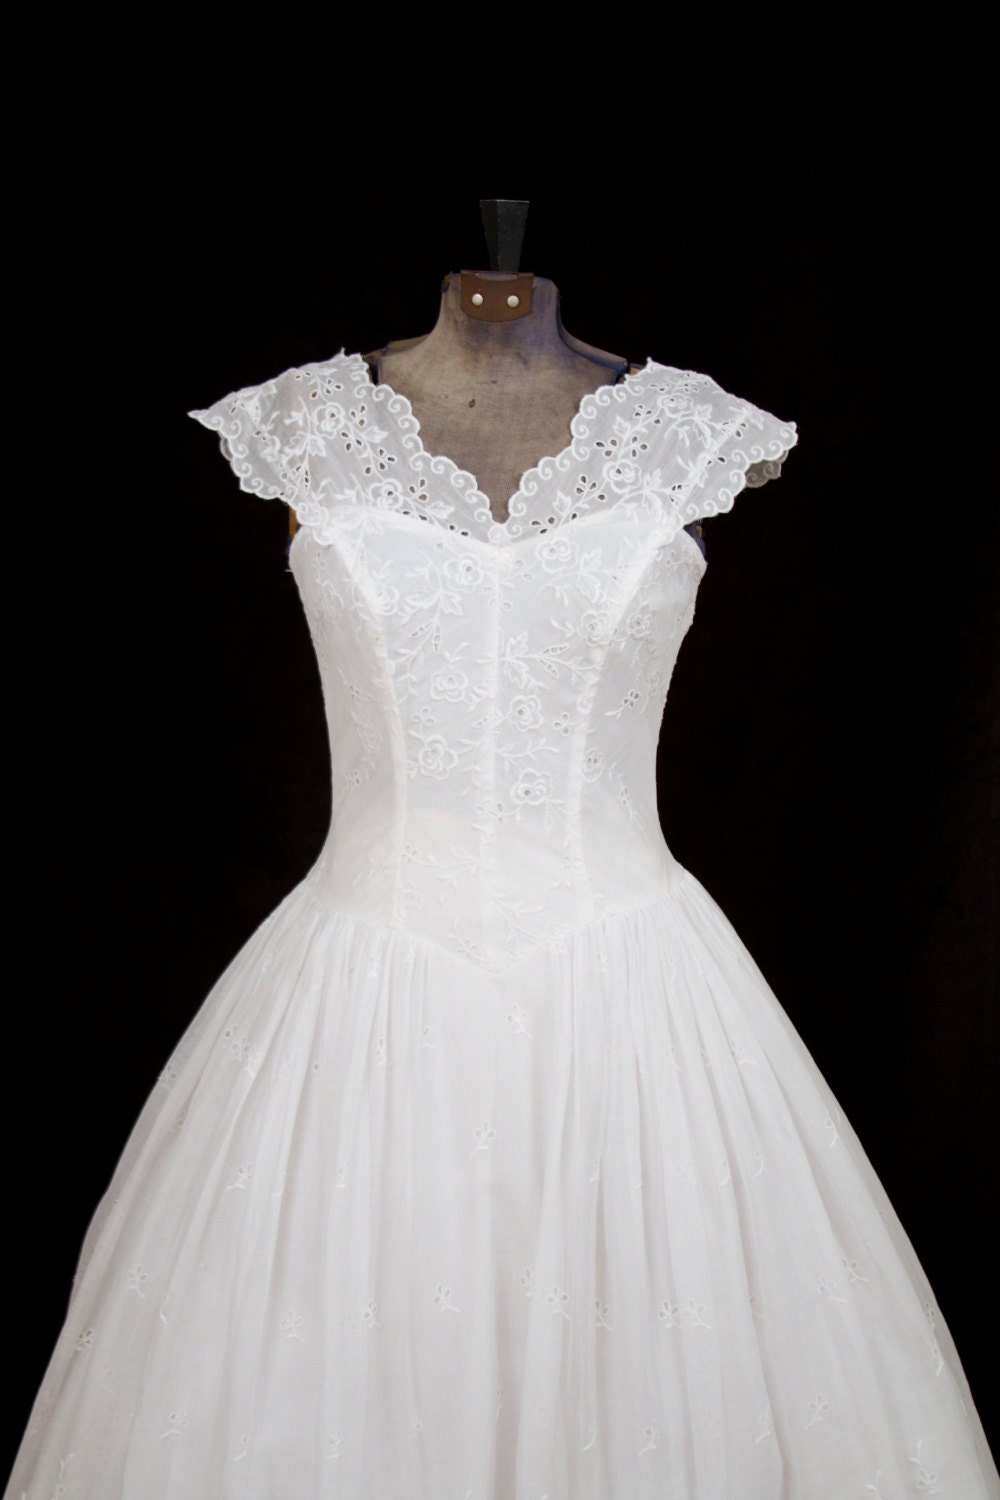 Unavailable listing on etsy for White cotton eyelet wedding dress